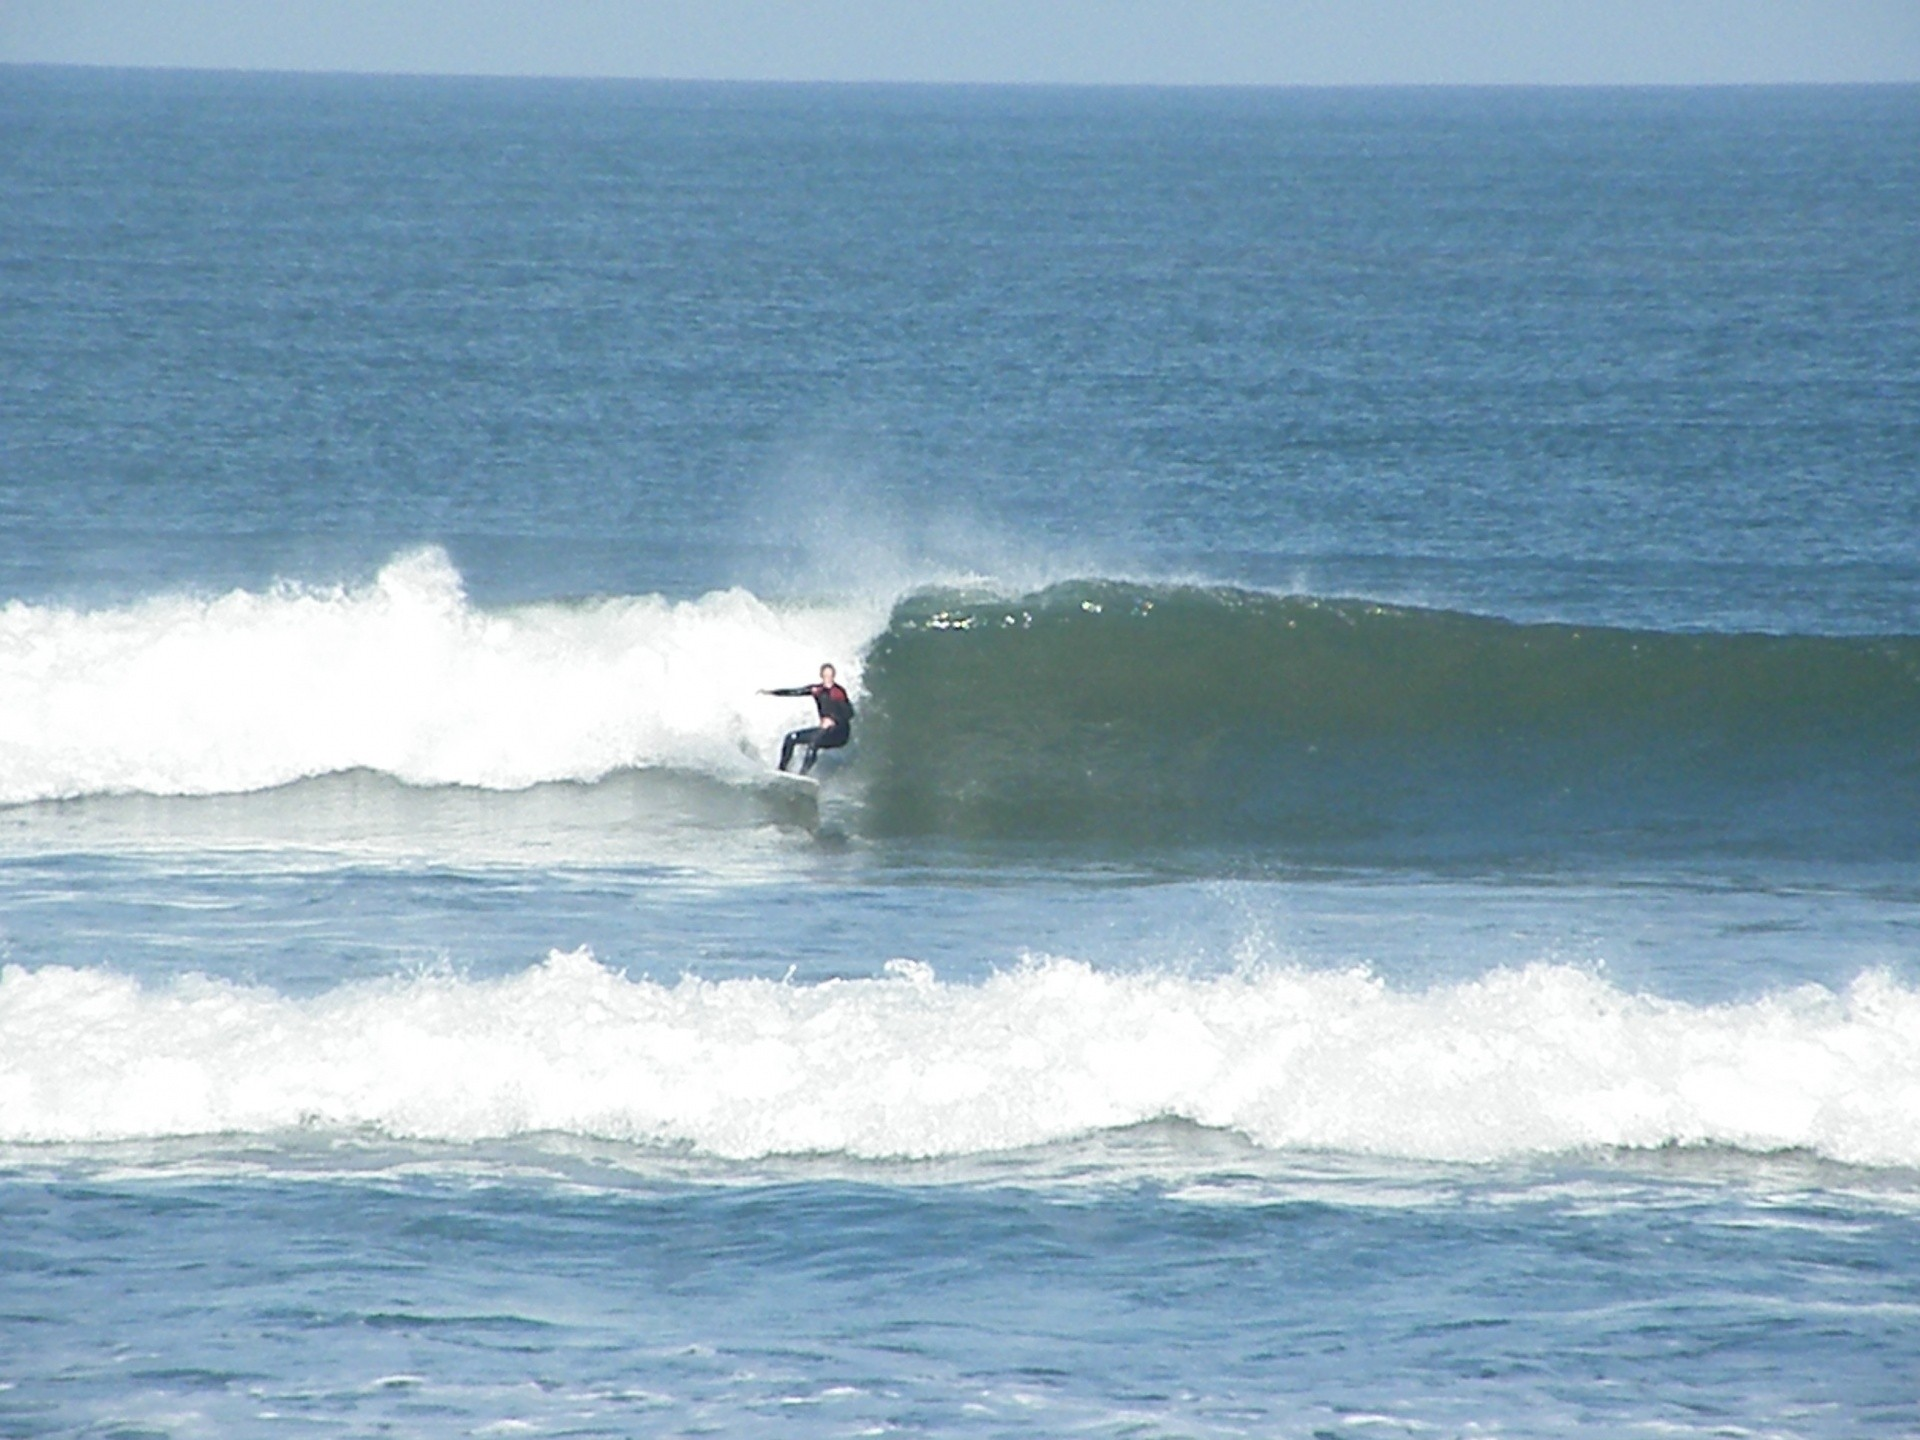 Sahara Surf's photo of Sidi Ifni